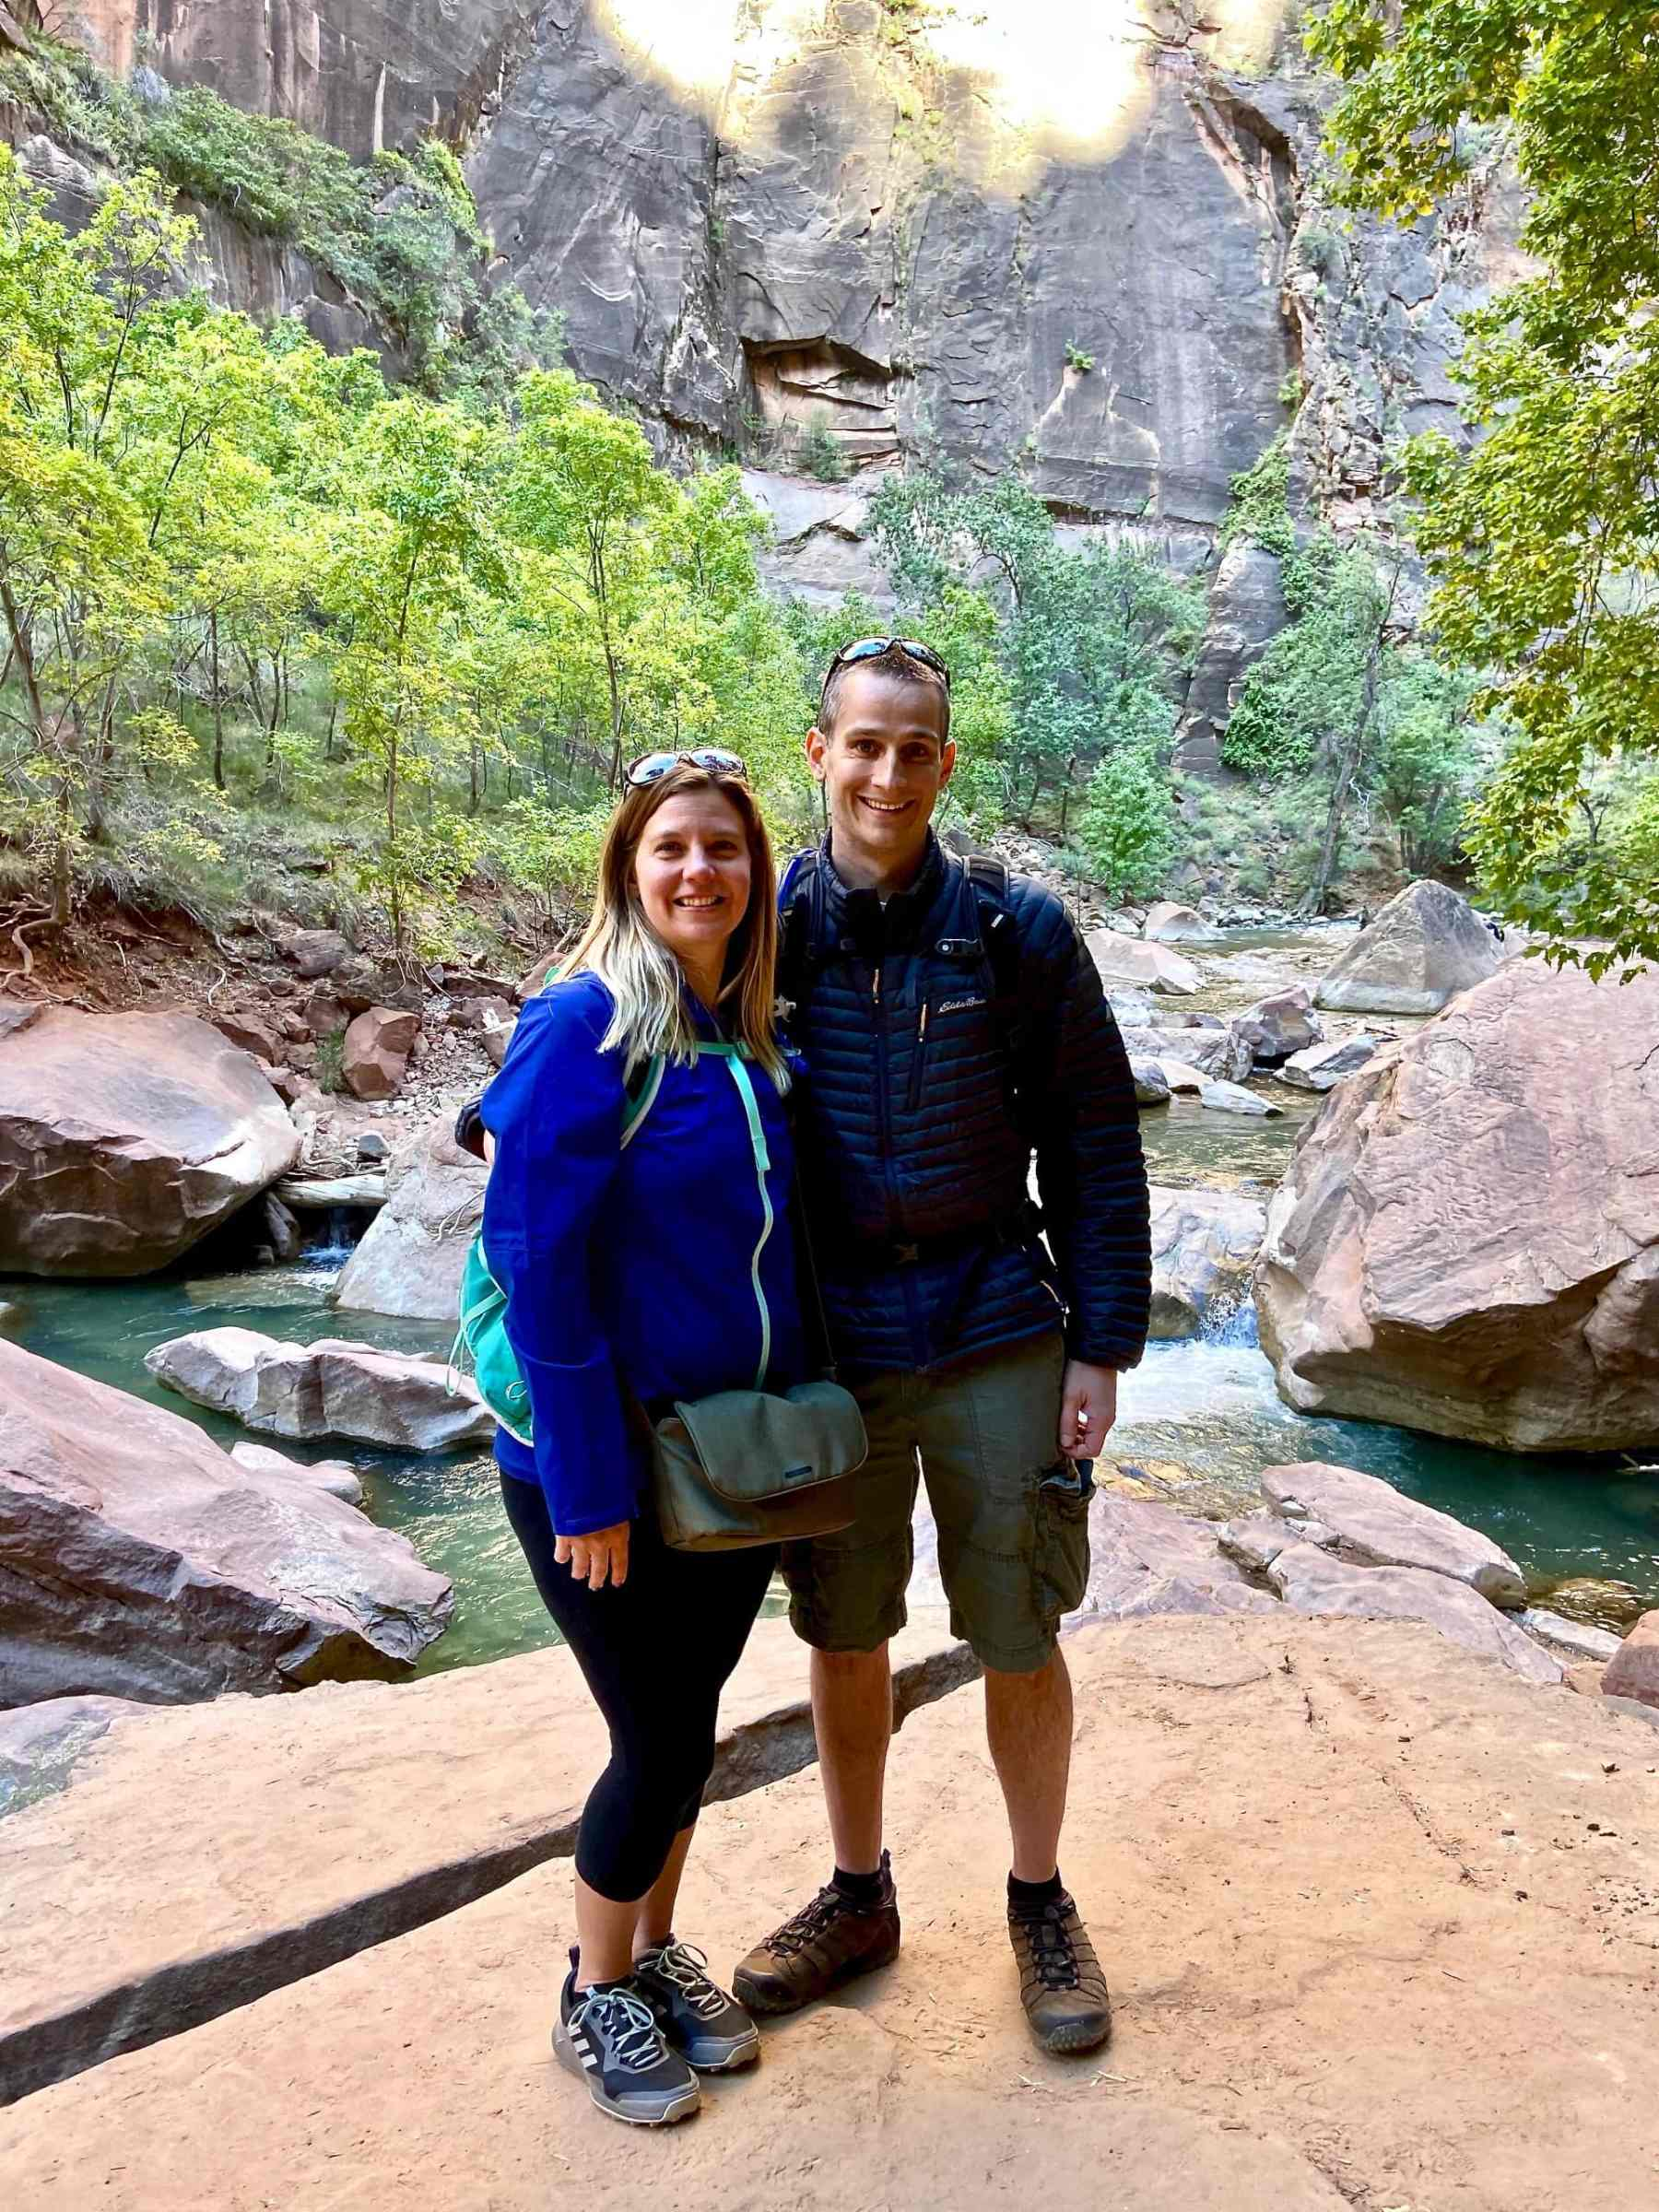 Loving our first visit to Zion